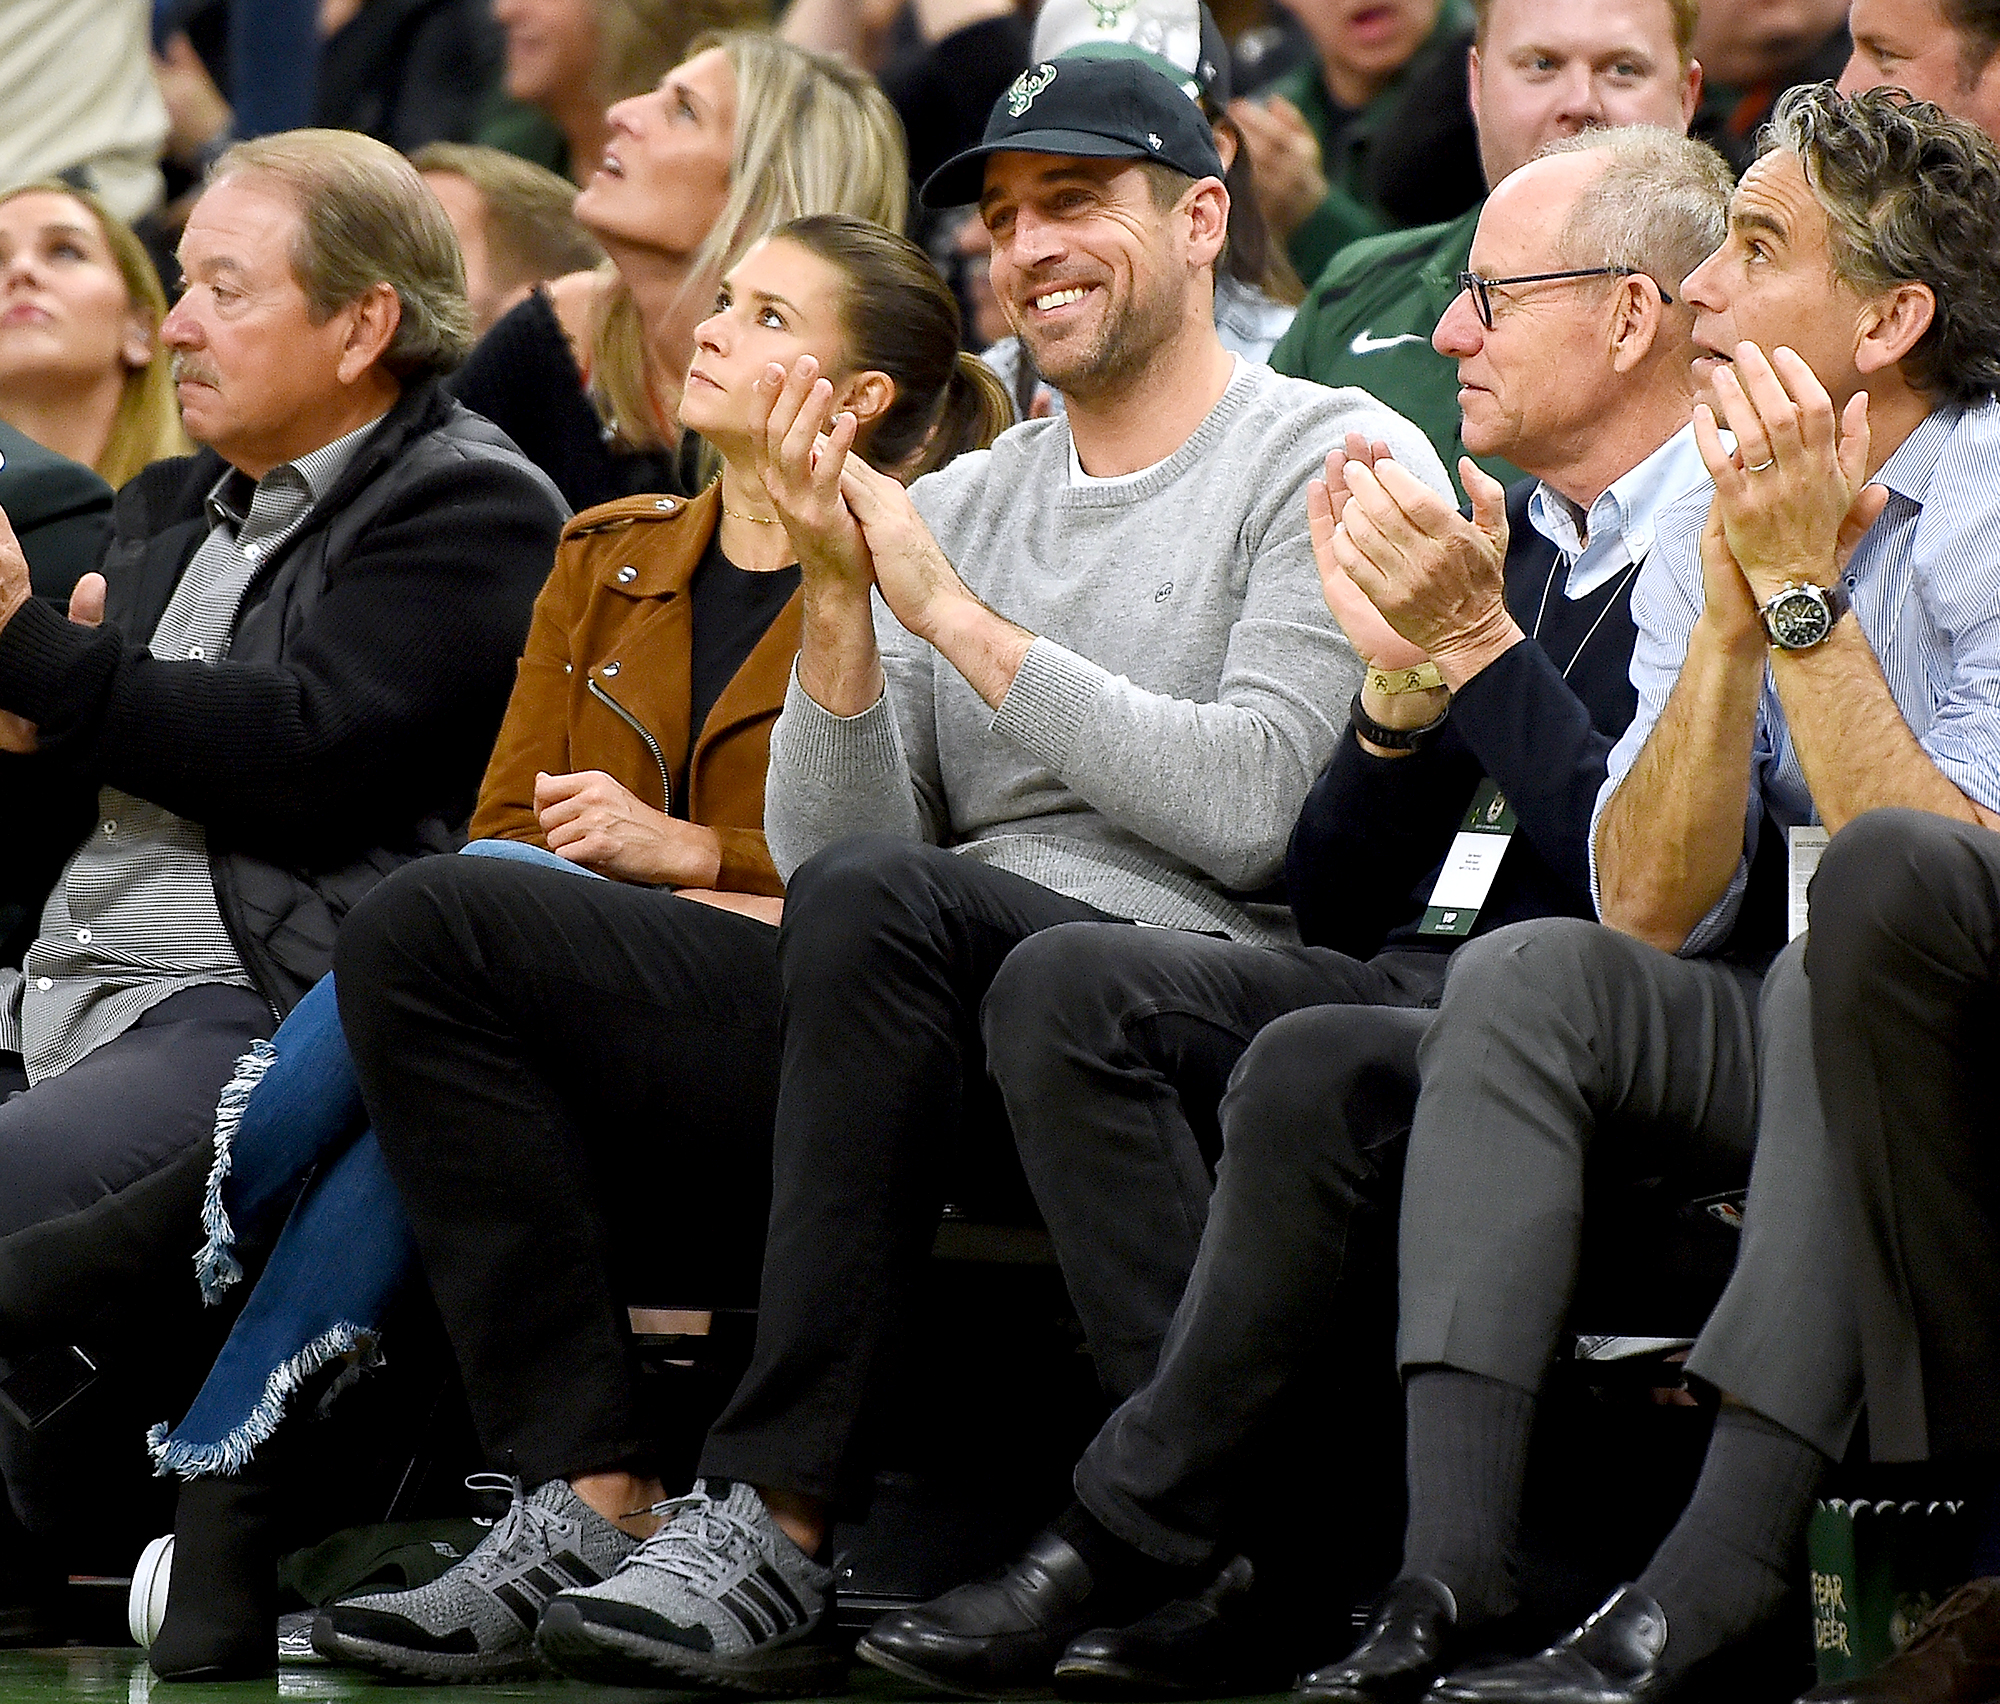 Aaron-Rodgers-Basketball-Game-Danica-Patrick - Green Bay Packers quarterback Aaron Rodgers and Danica Patrick attend Game Two of the first round of the 2019 NBA Eastern Conference Playoffs.